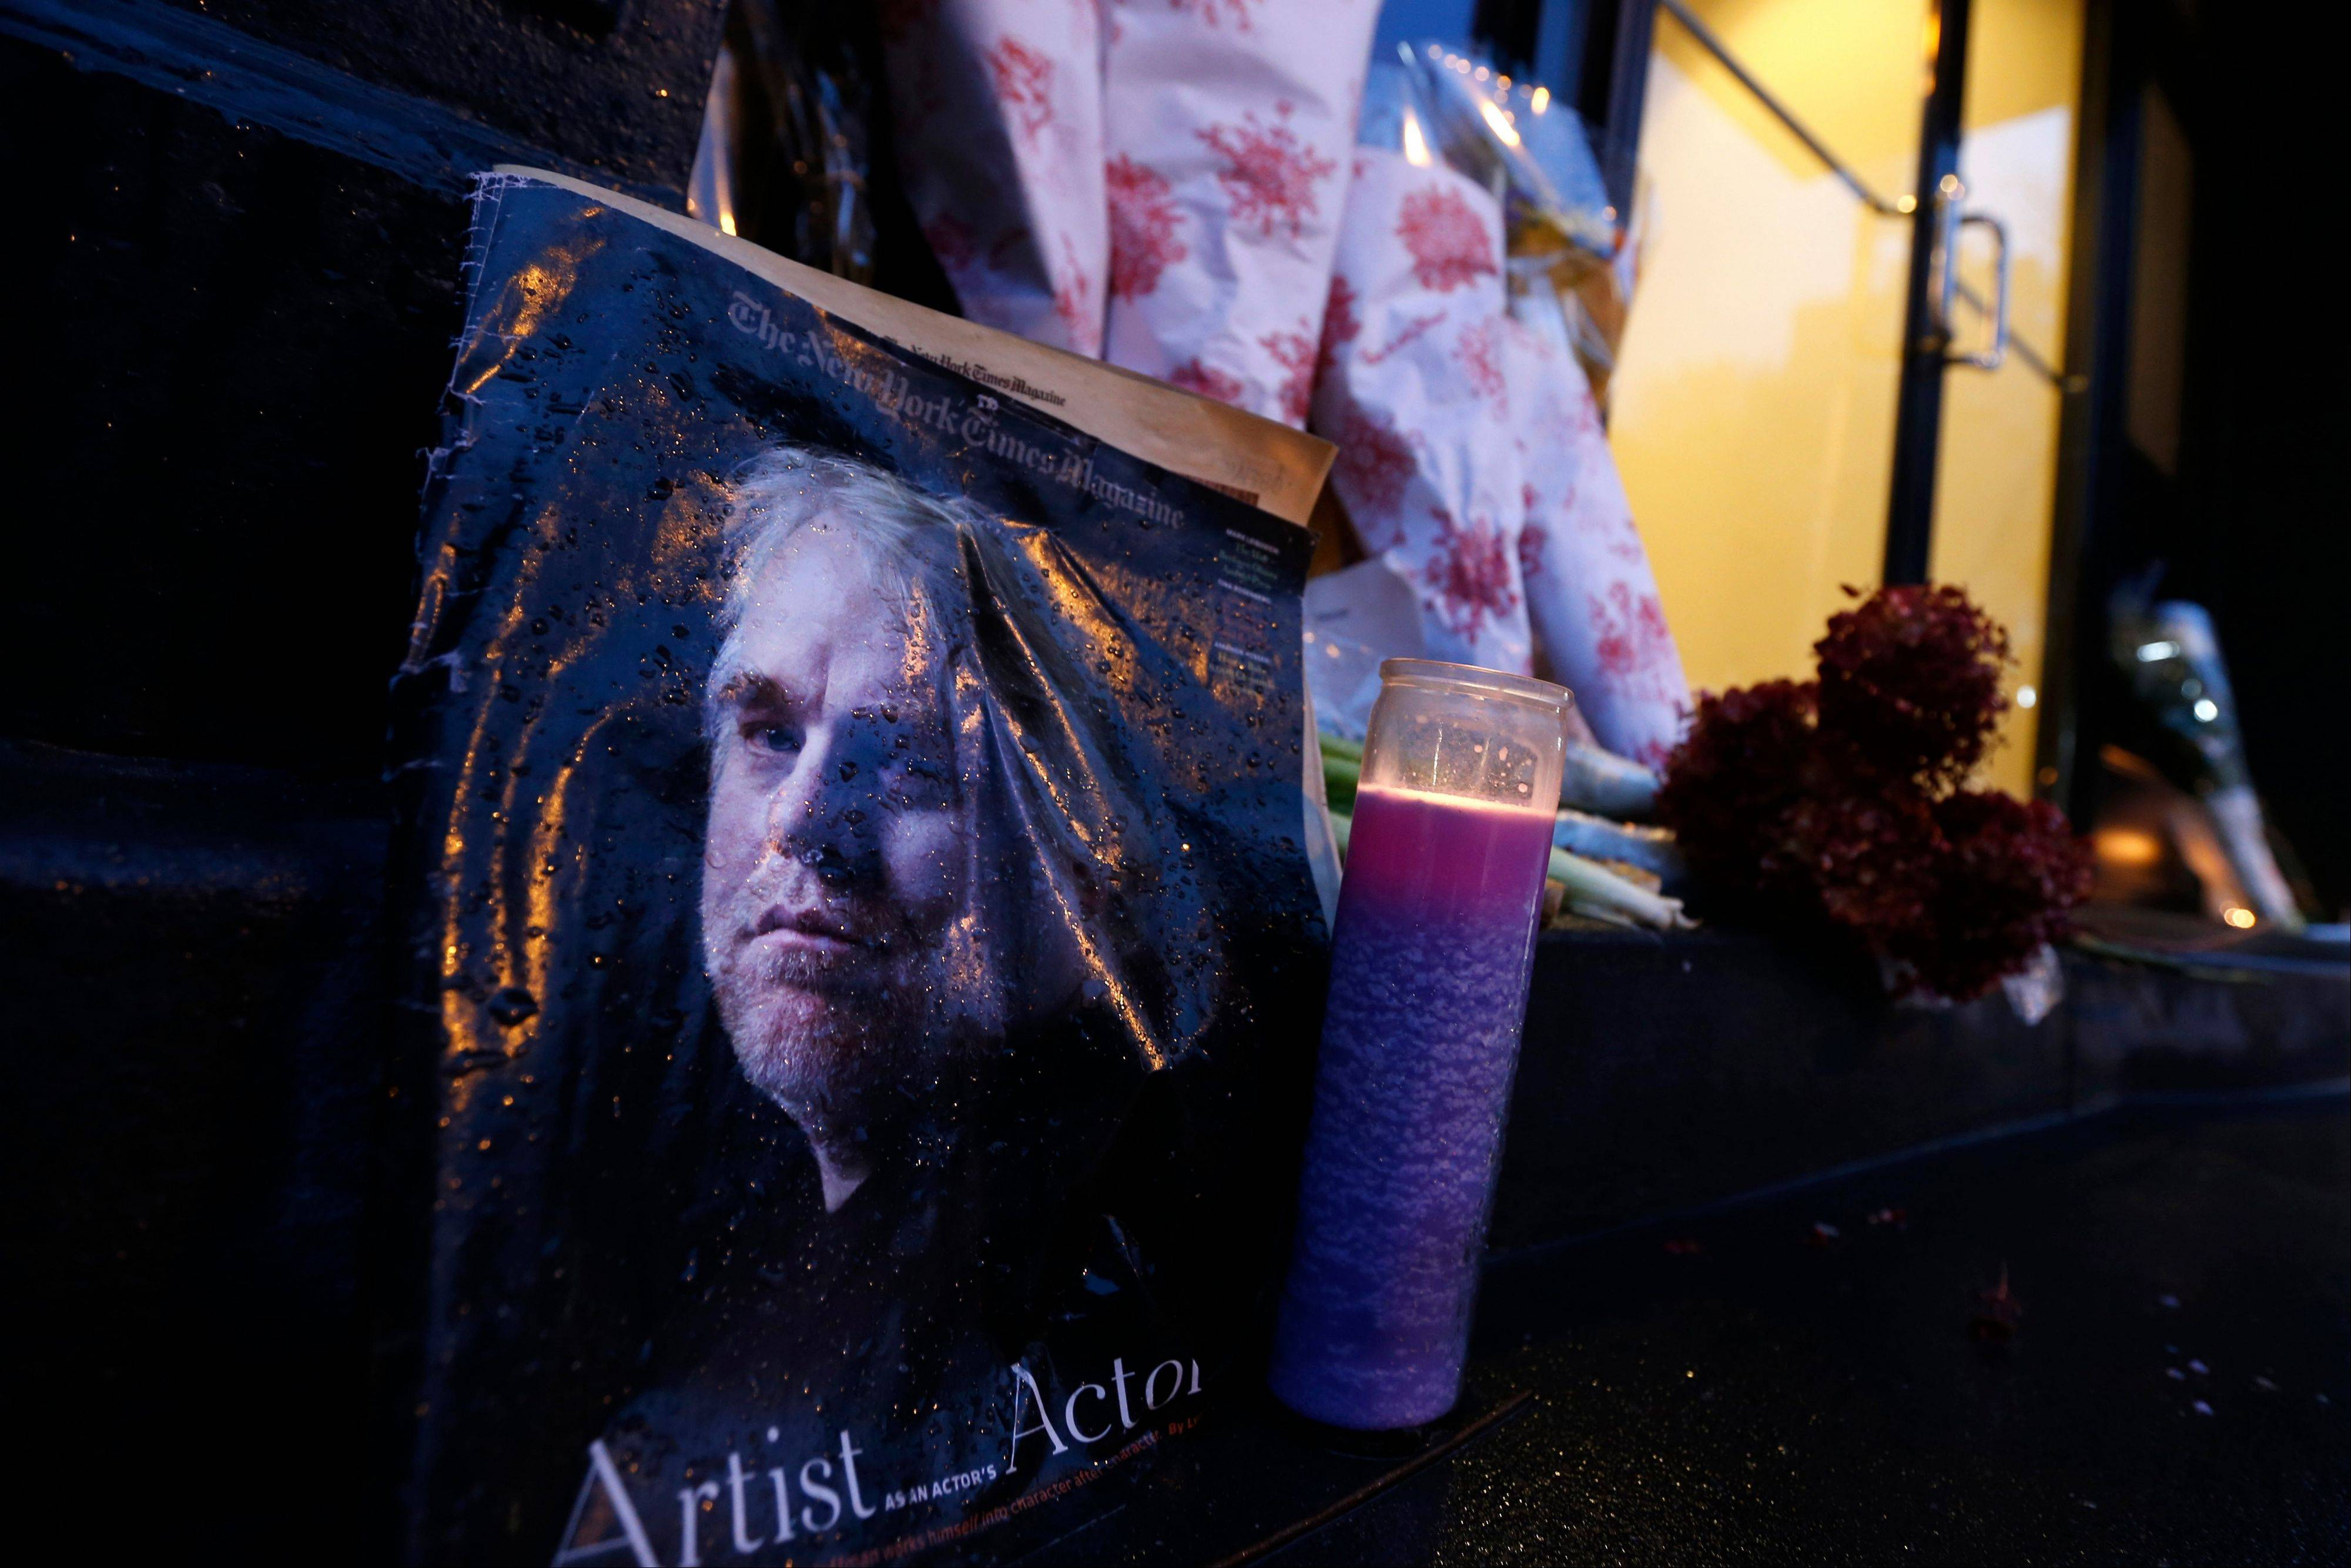 Philip Seymour Hoffman fans mourn, tout his talent